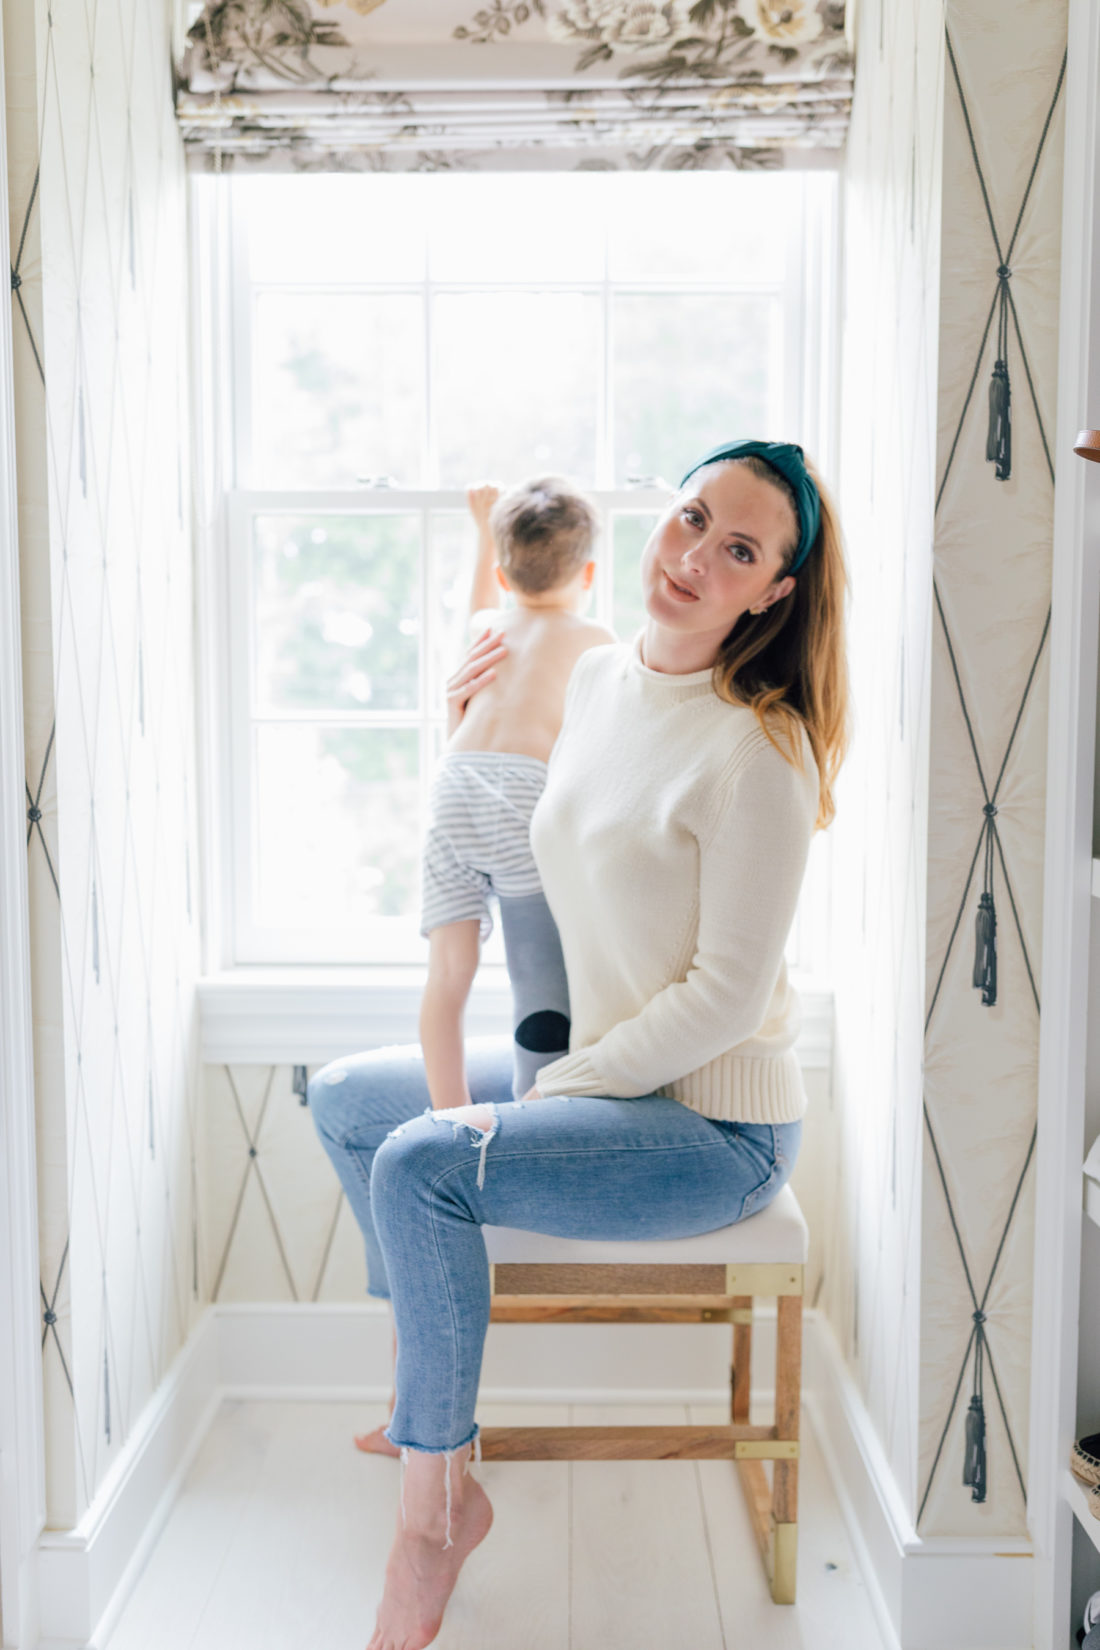 Eva Amurri Martino in bronzed glowy makeup holding son Major